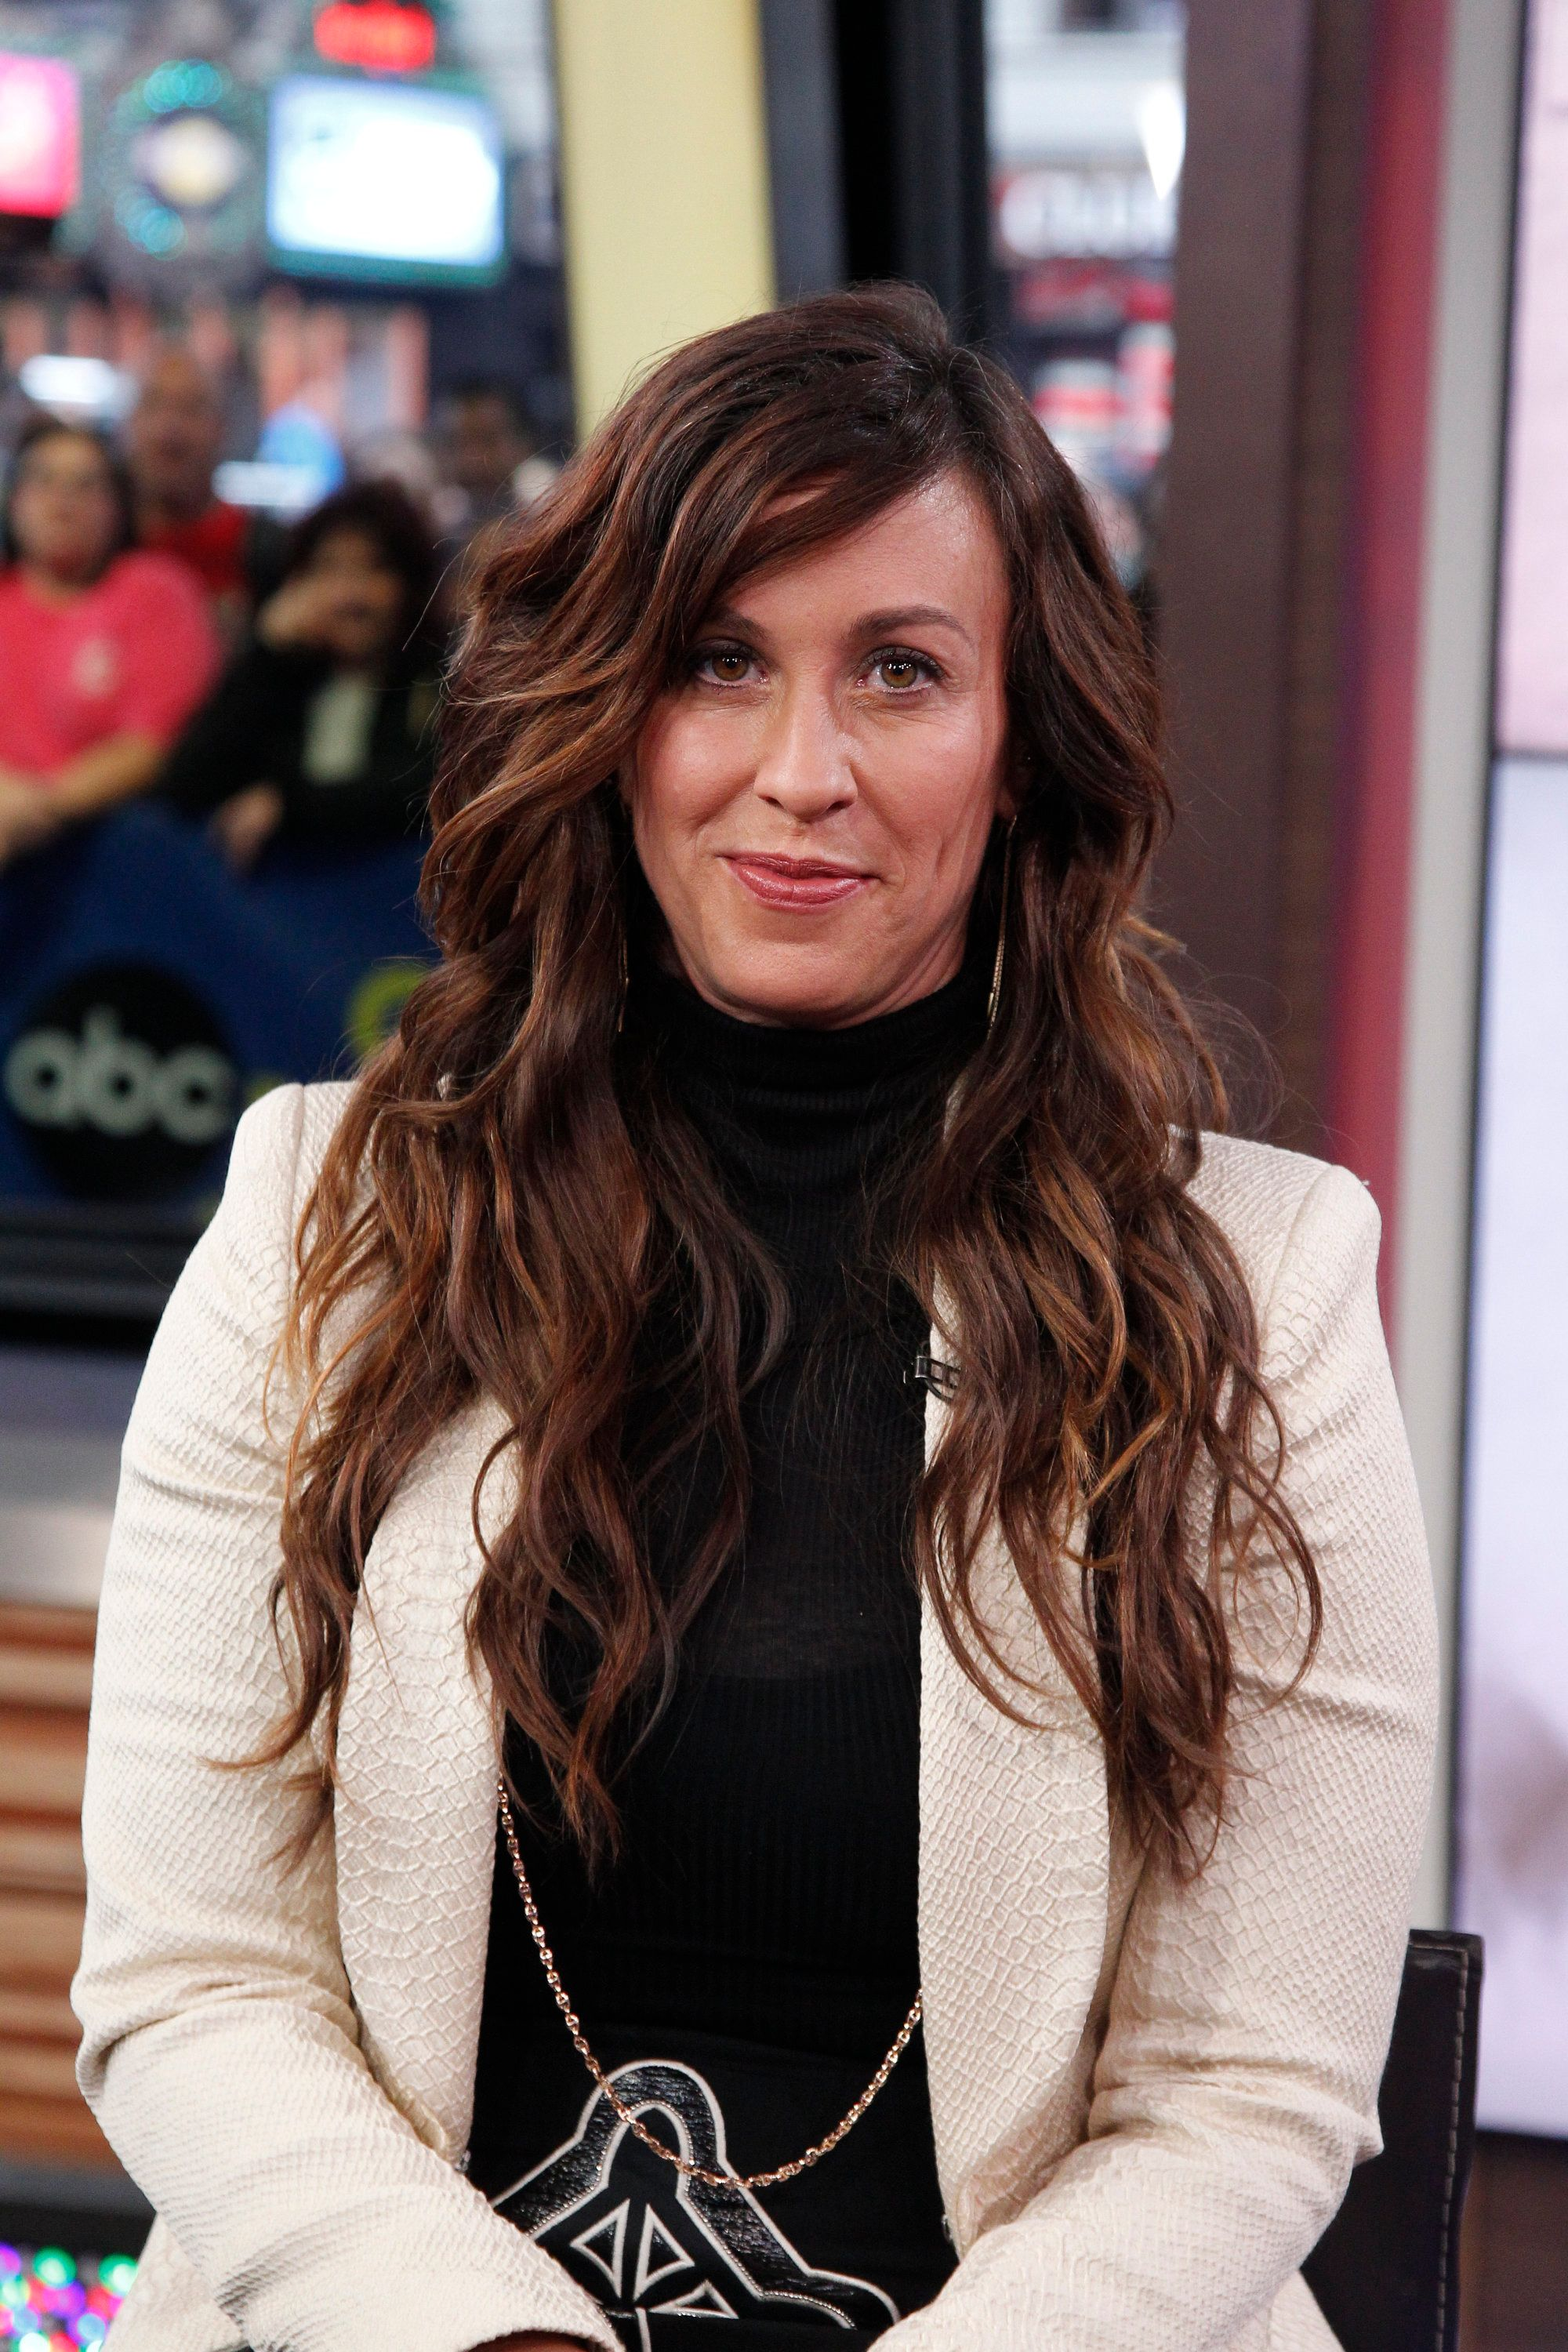 GOOD MORNING AMERICA - Grammy Award winning singer/songwriter Alanis Morisette performs on GOOD MORNING AMERICA, 11/2/15, airing on the ABC Television Network.   (Photo by Lou Rocco/ABC via Getty Images)